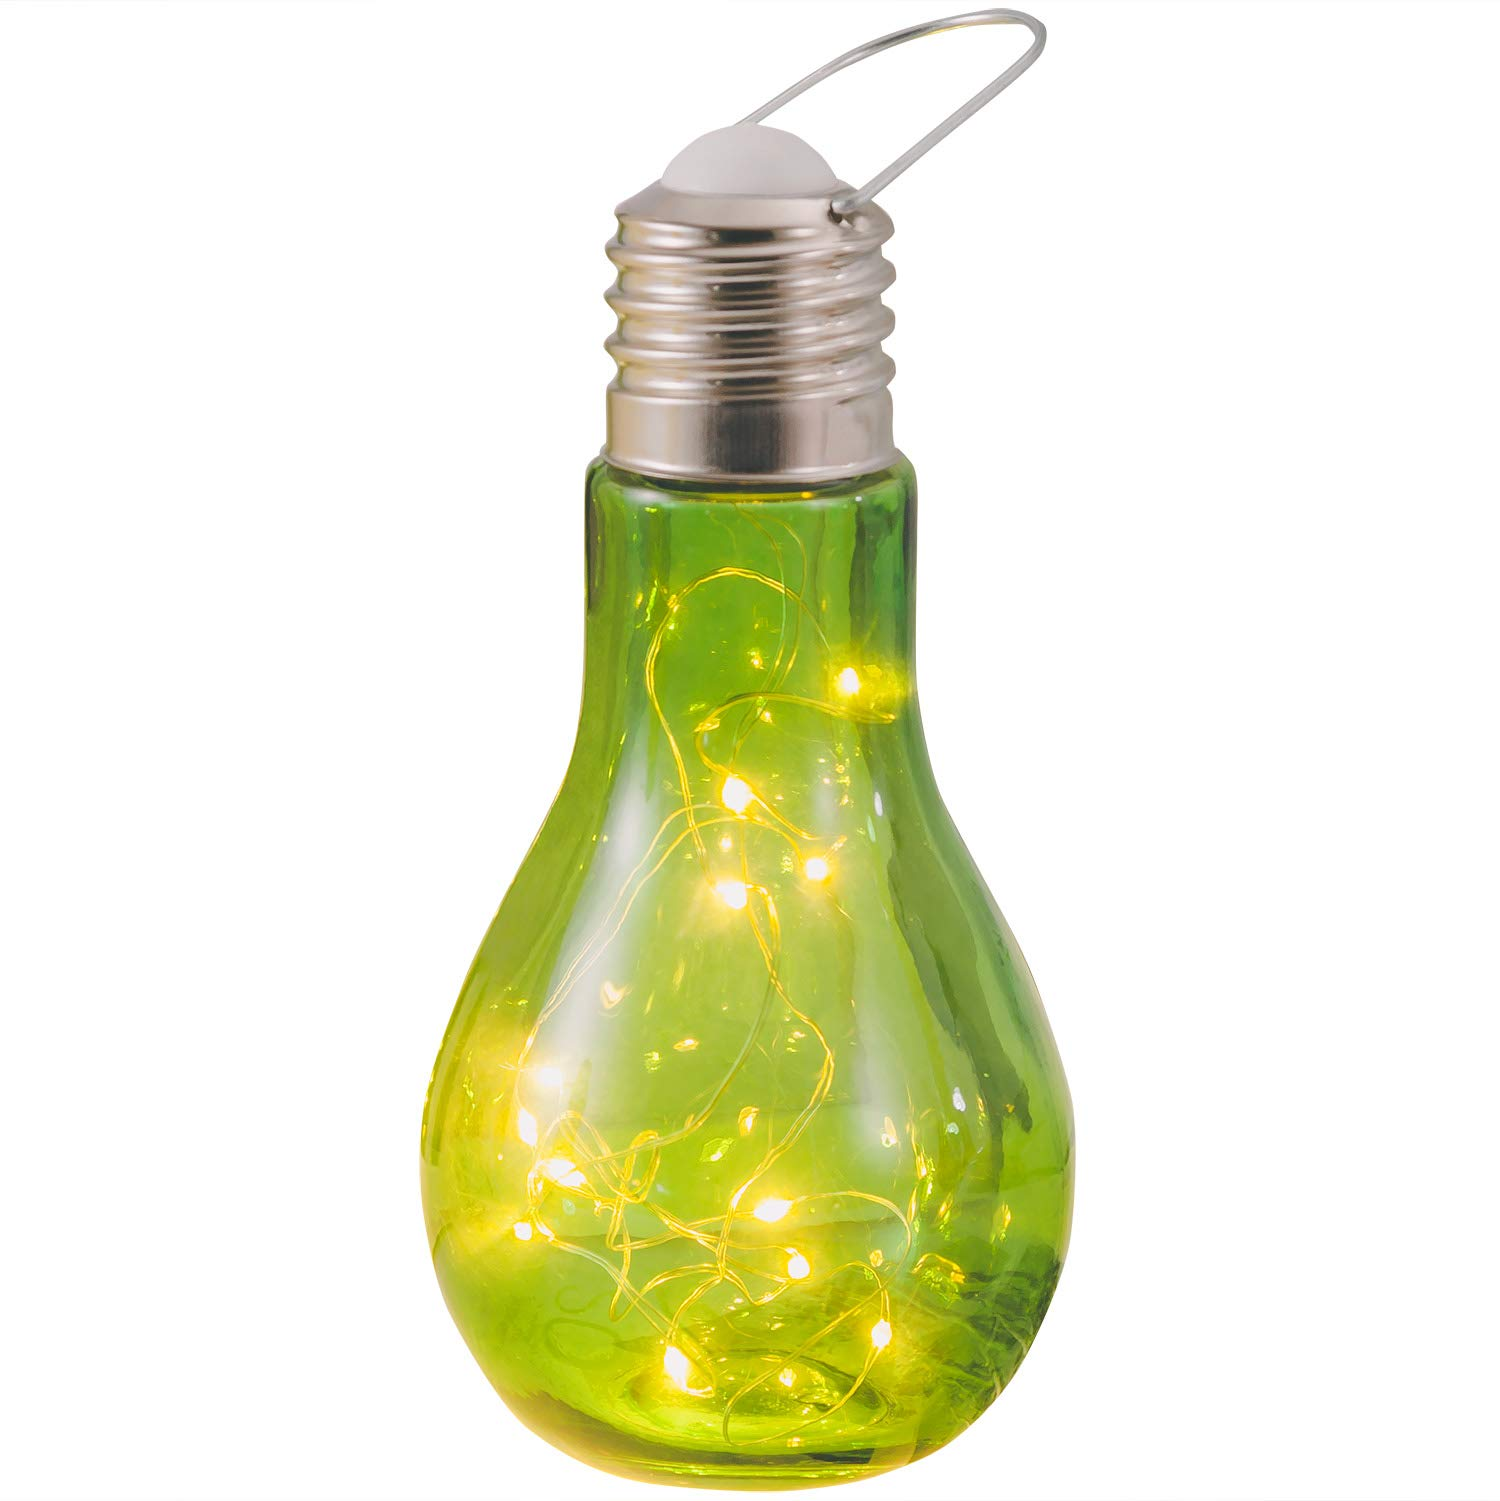 Newest Glass Ball Table Lamps Hanging Starry Led Night Light Bulb Design Bedside Baby Nursery Lamp Room Decor for Women Kids Toy Wedding Party Decorations Christmas Valentine's Day Gift (Green)